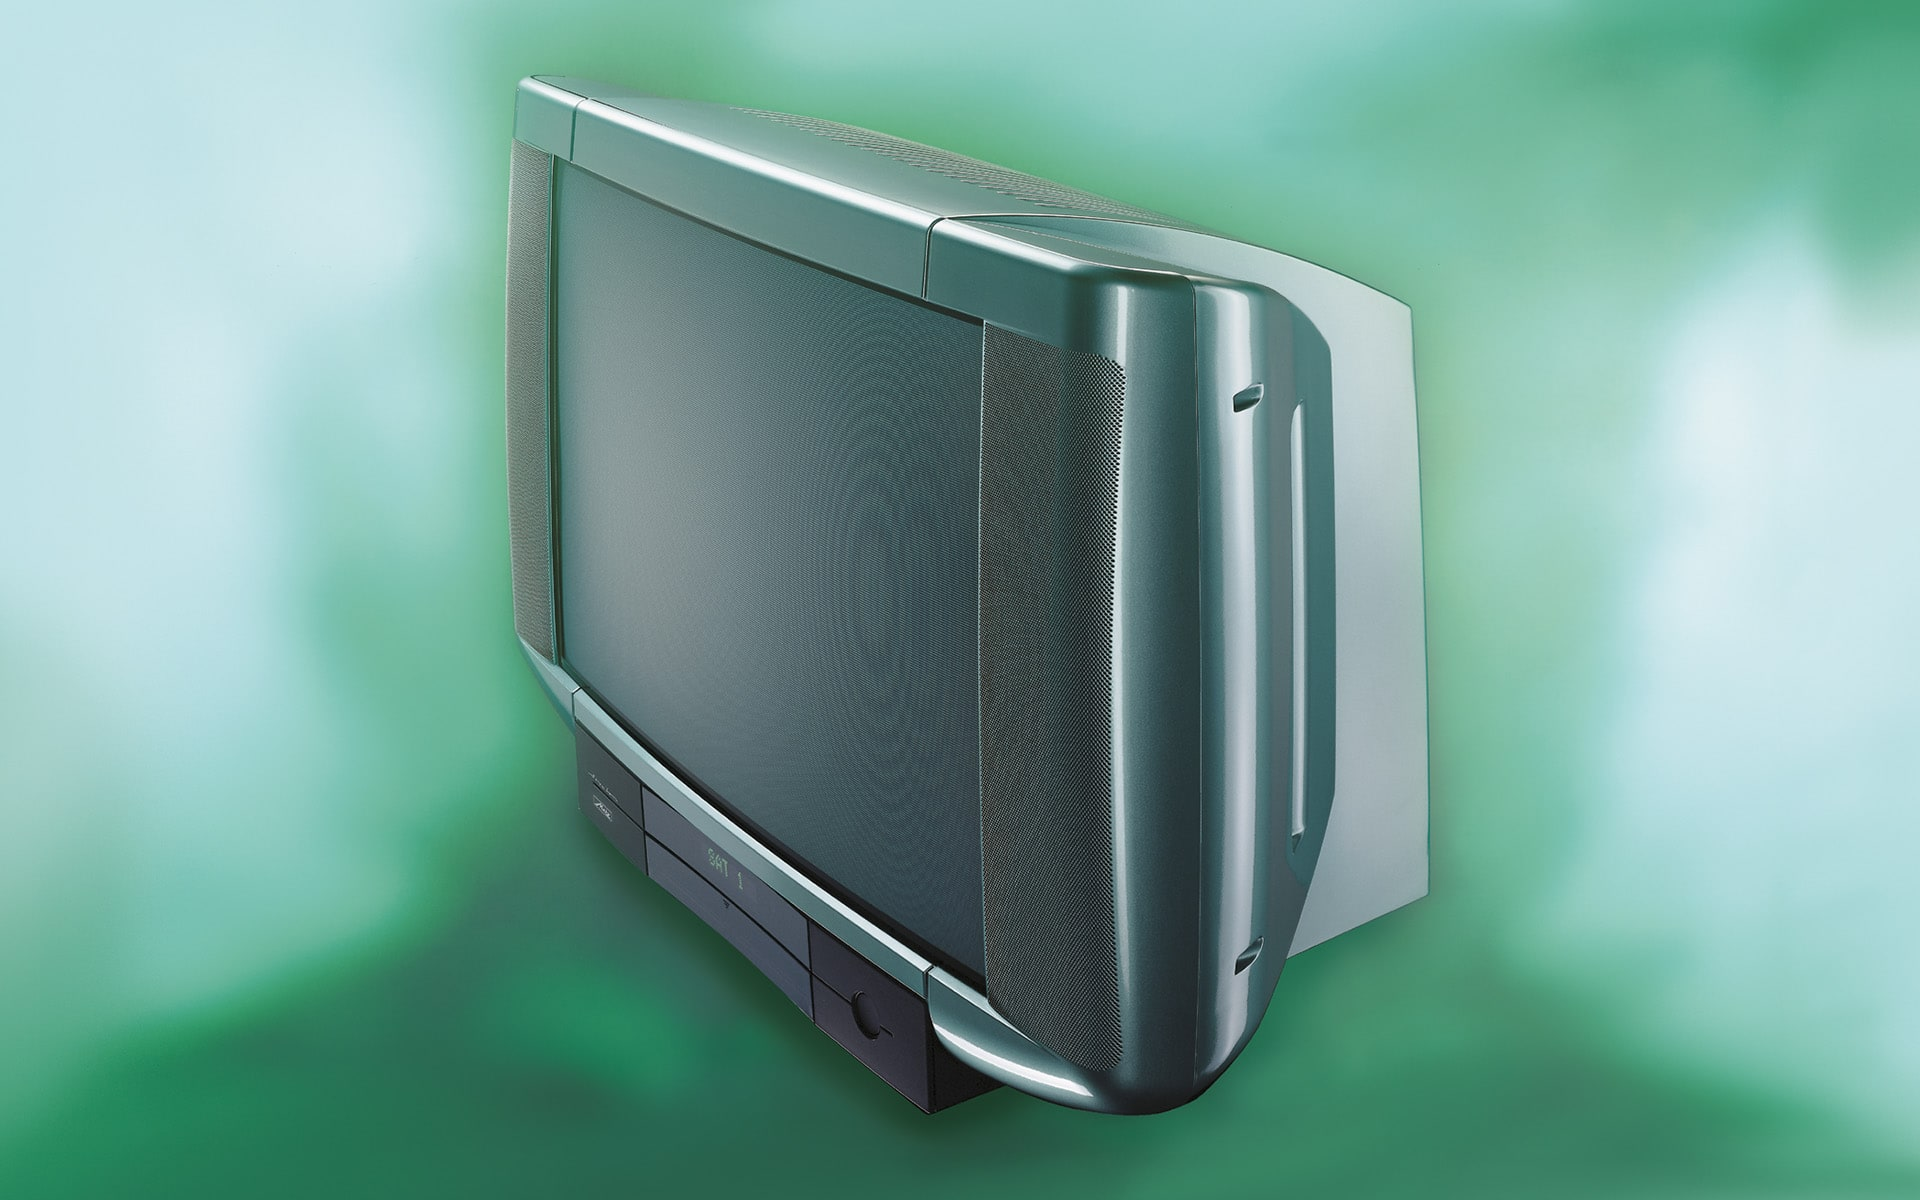 Grey-green TV Varioline for Metz by ITO Design, created in 1997